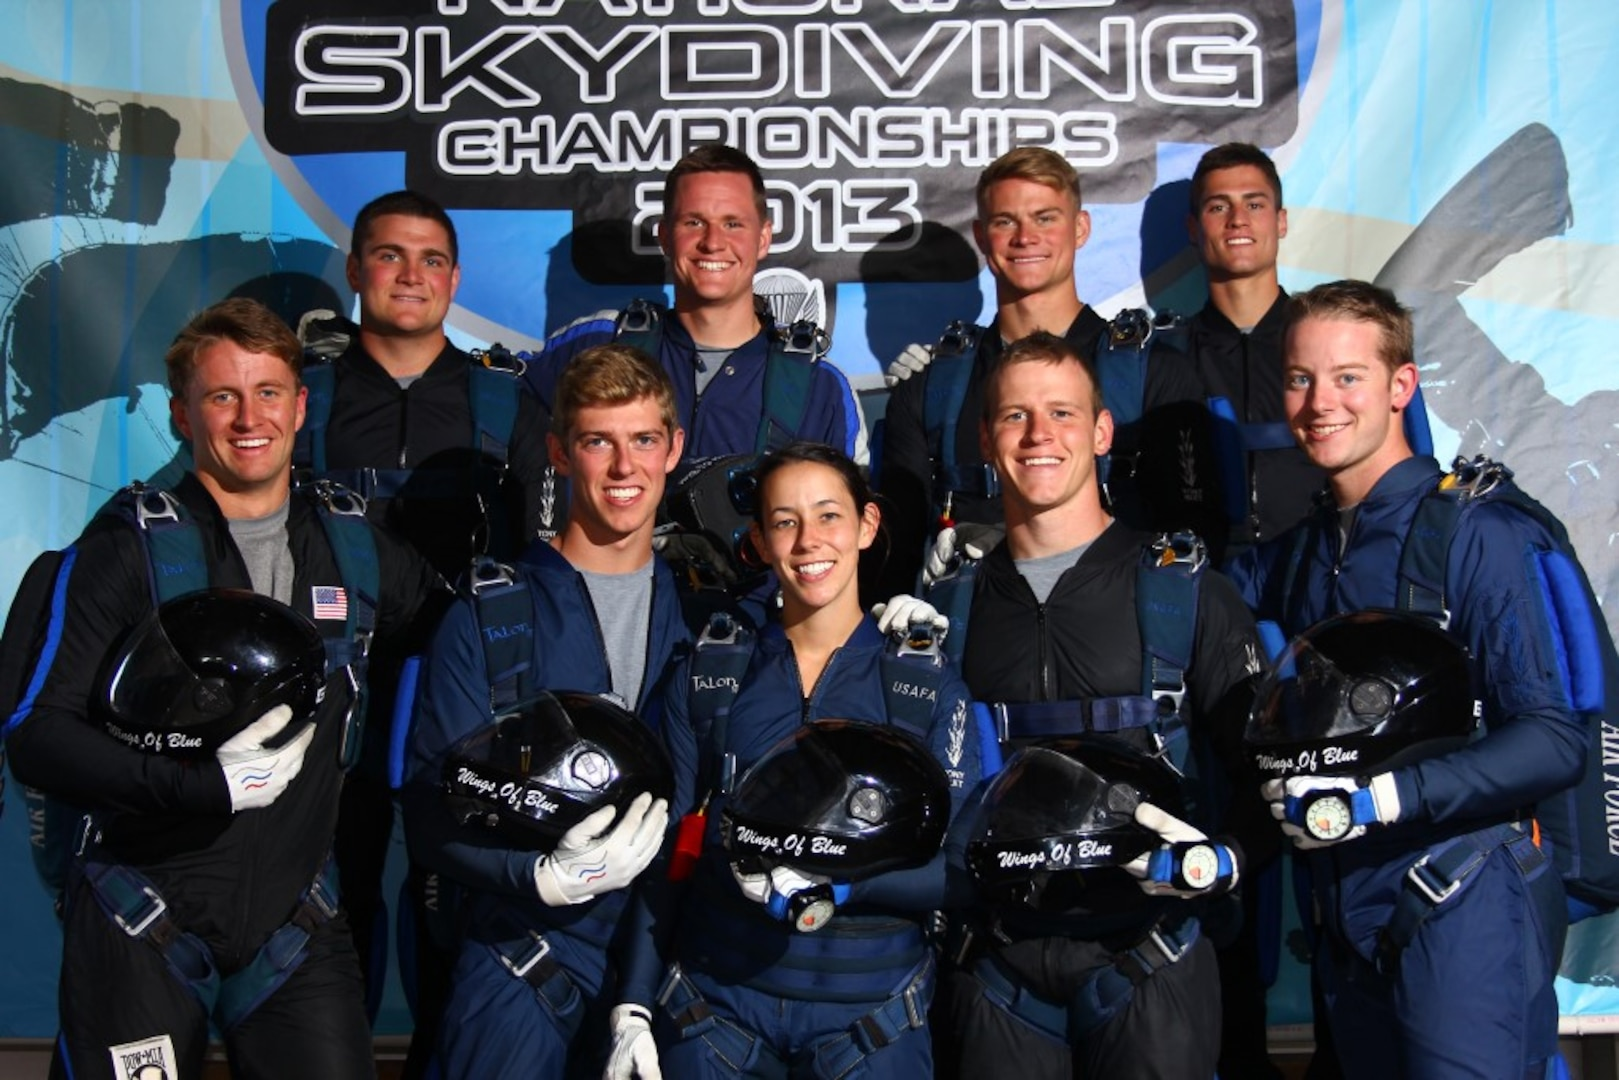 Air Force Teams Euphoria and Conundrum pose for a photo at the U.S. Parachute Assocation National Skydiving Championships 2013, which took place in Chicago from September 11-22, 2013.  The teams are a part of the Wings of Blue -- The U.S. Air Force Parachute Team.  The Wings of Blue are based out of the U.S. Air Force Academy, Colo., and operated by the 98th Flying Training Squadron, whose mission is to develop character and leadership in cadets through the sport of parachuting.  (Courtesy Photo)